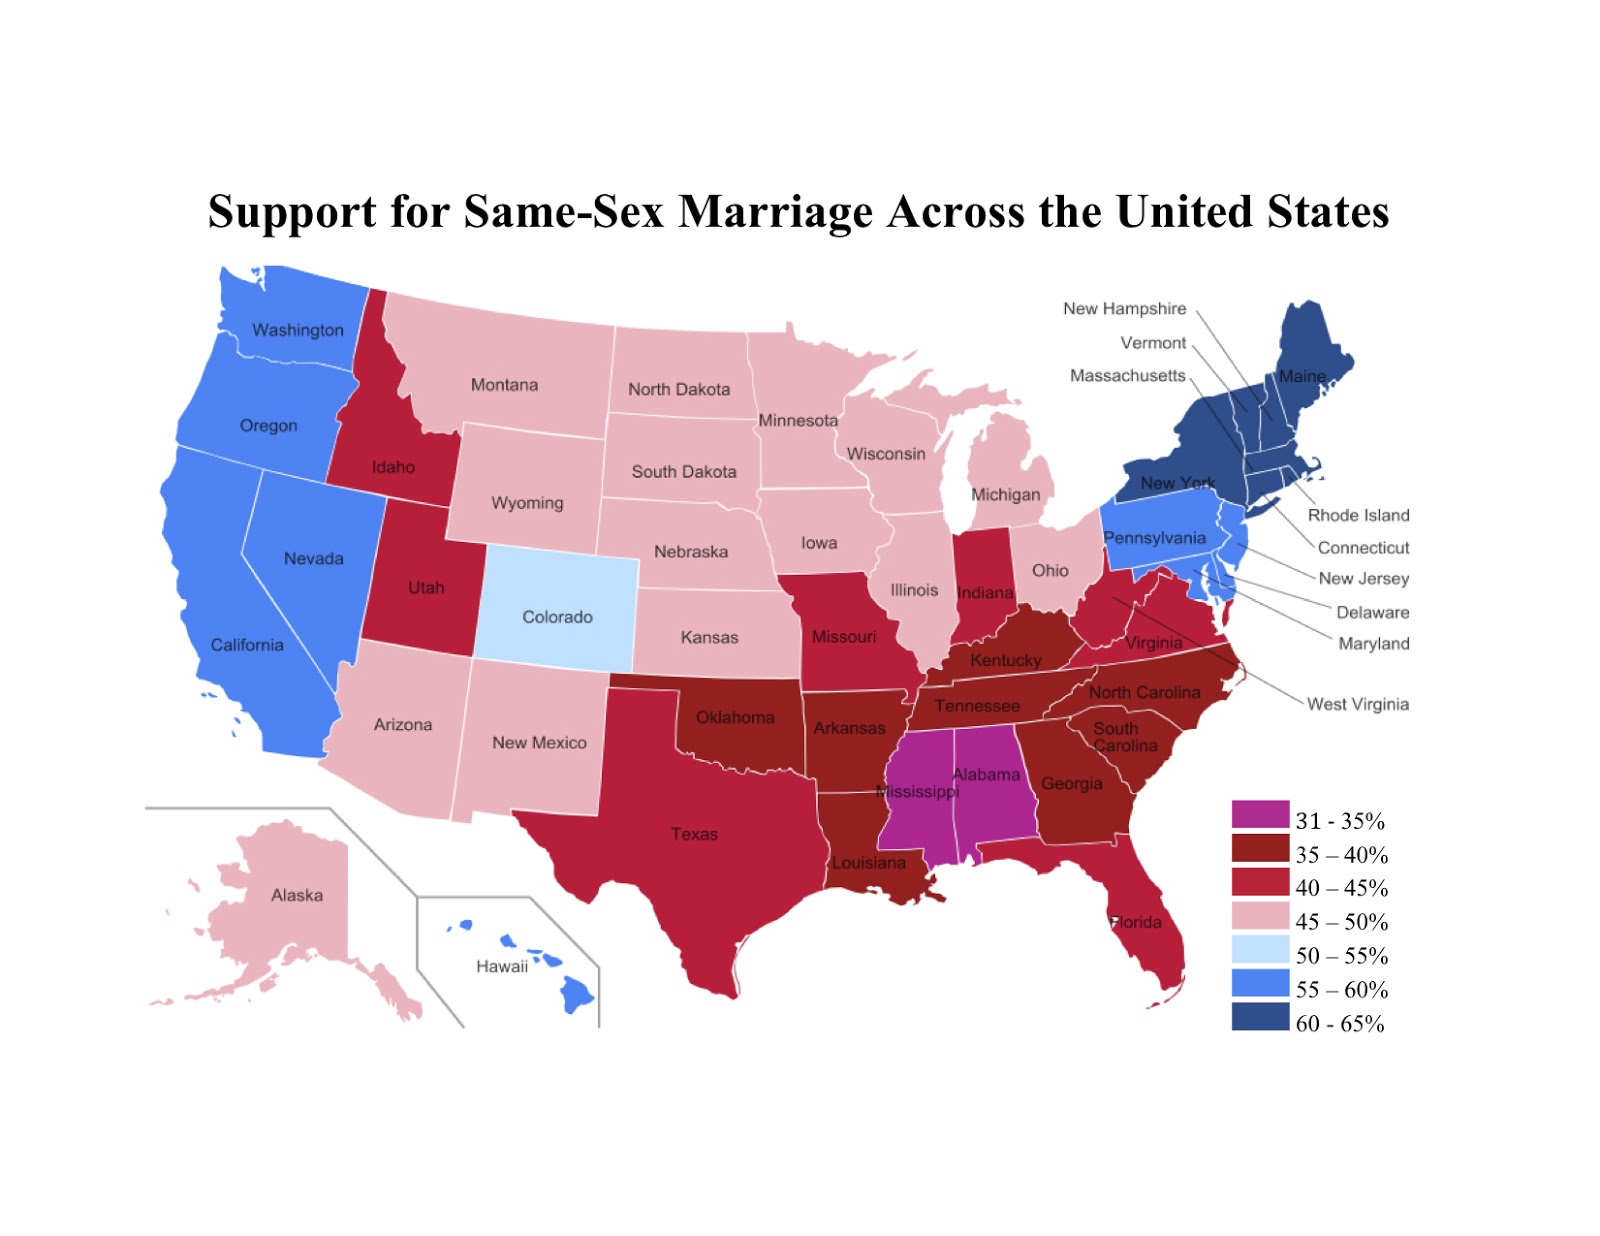 most states still oppose same sex marriage but public opinion near tipping point